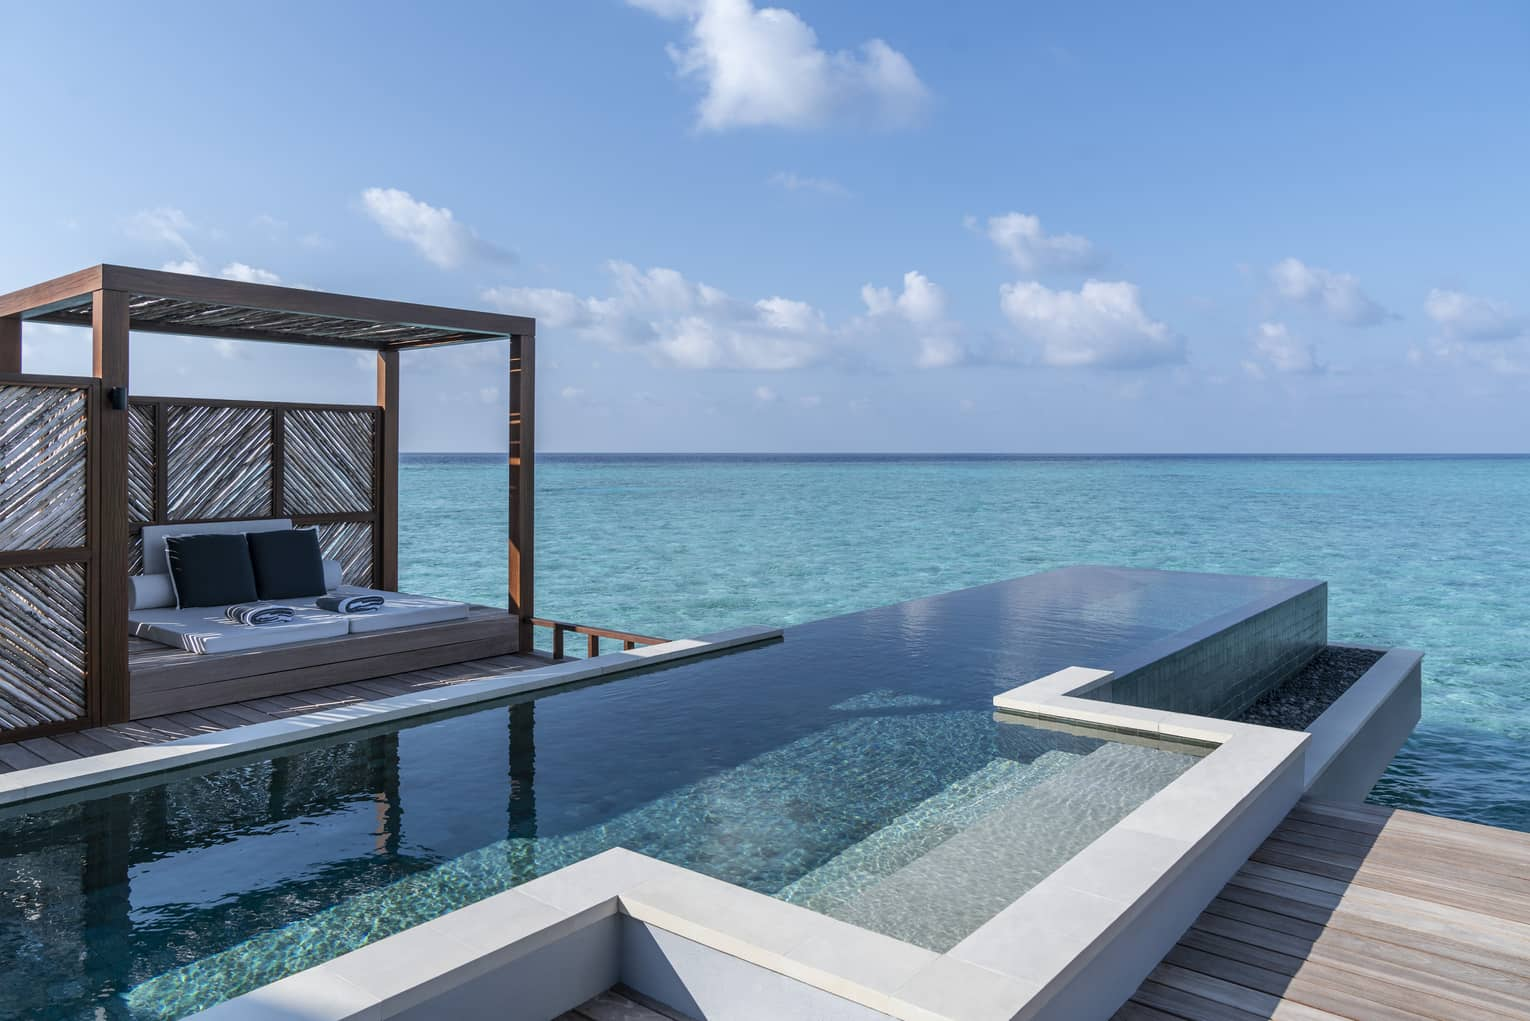 An oceanside infinity pool with a covered cabana